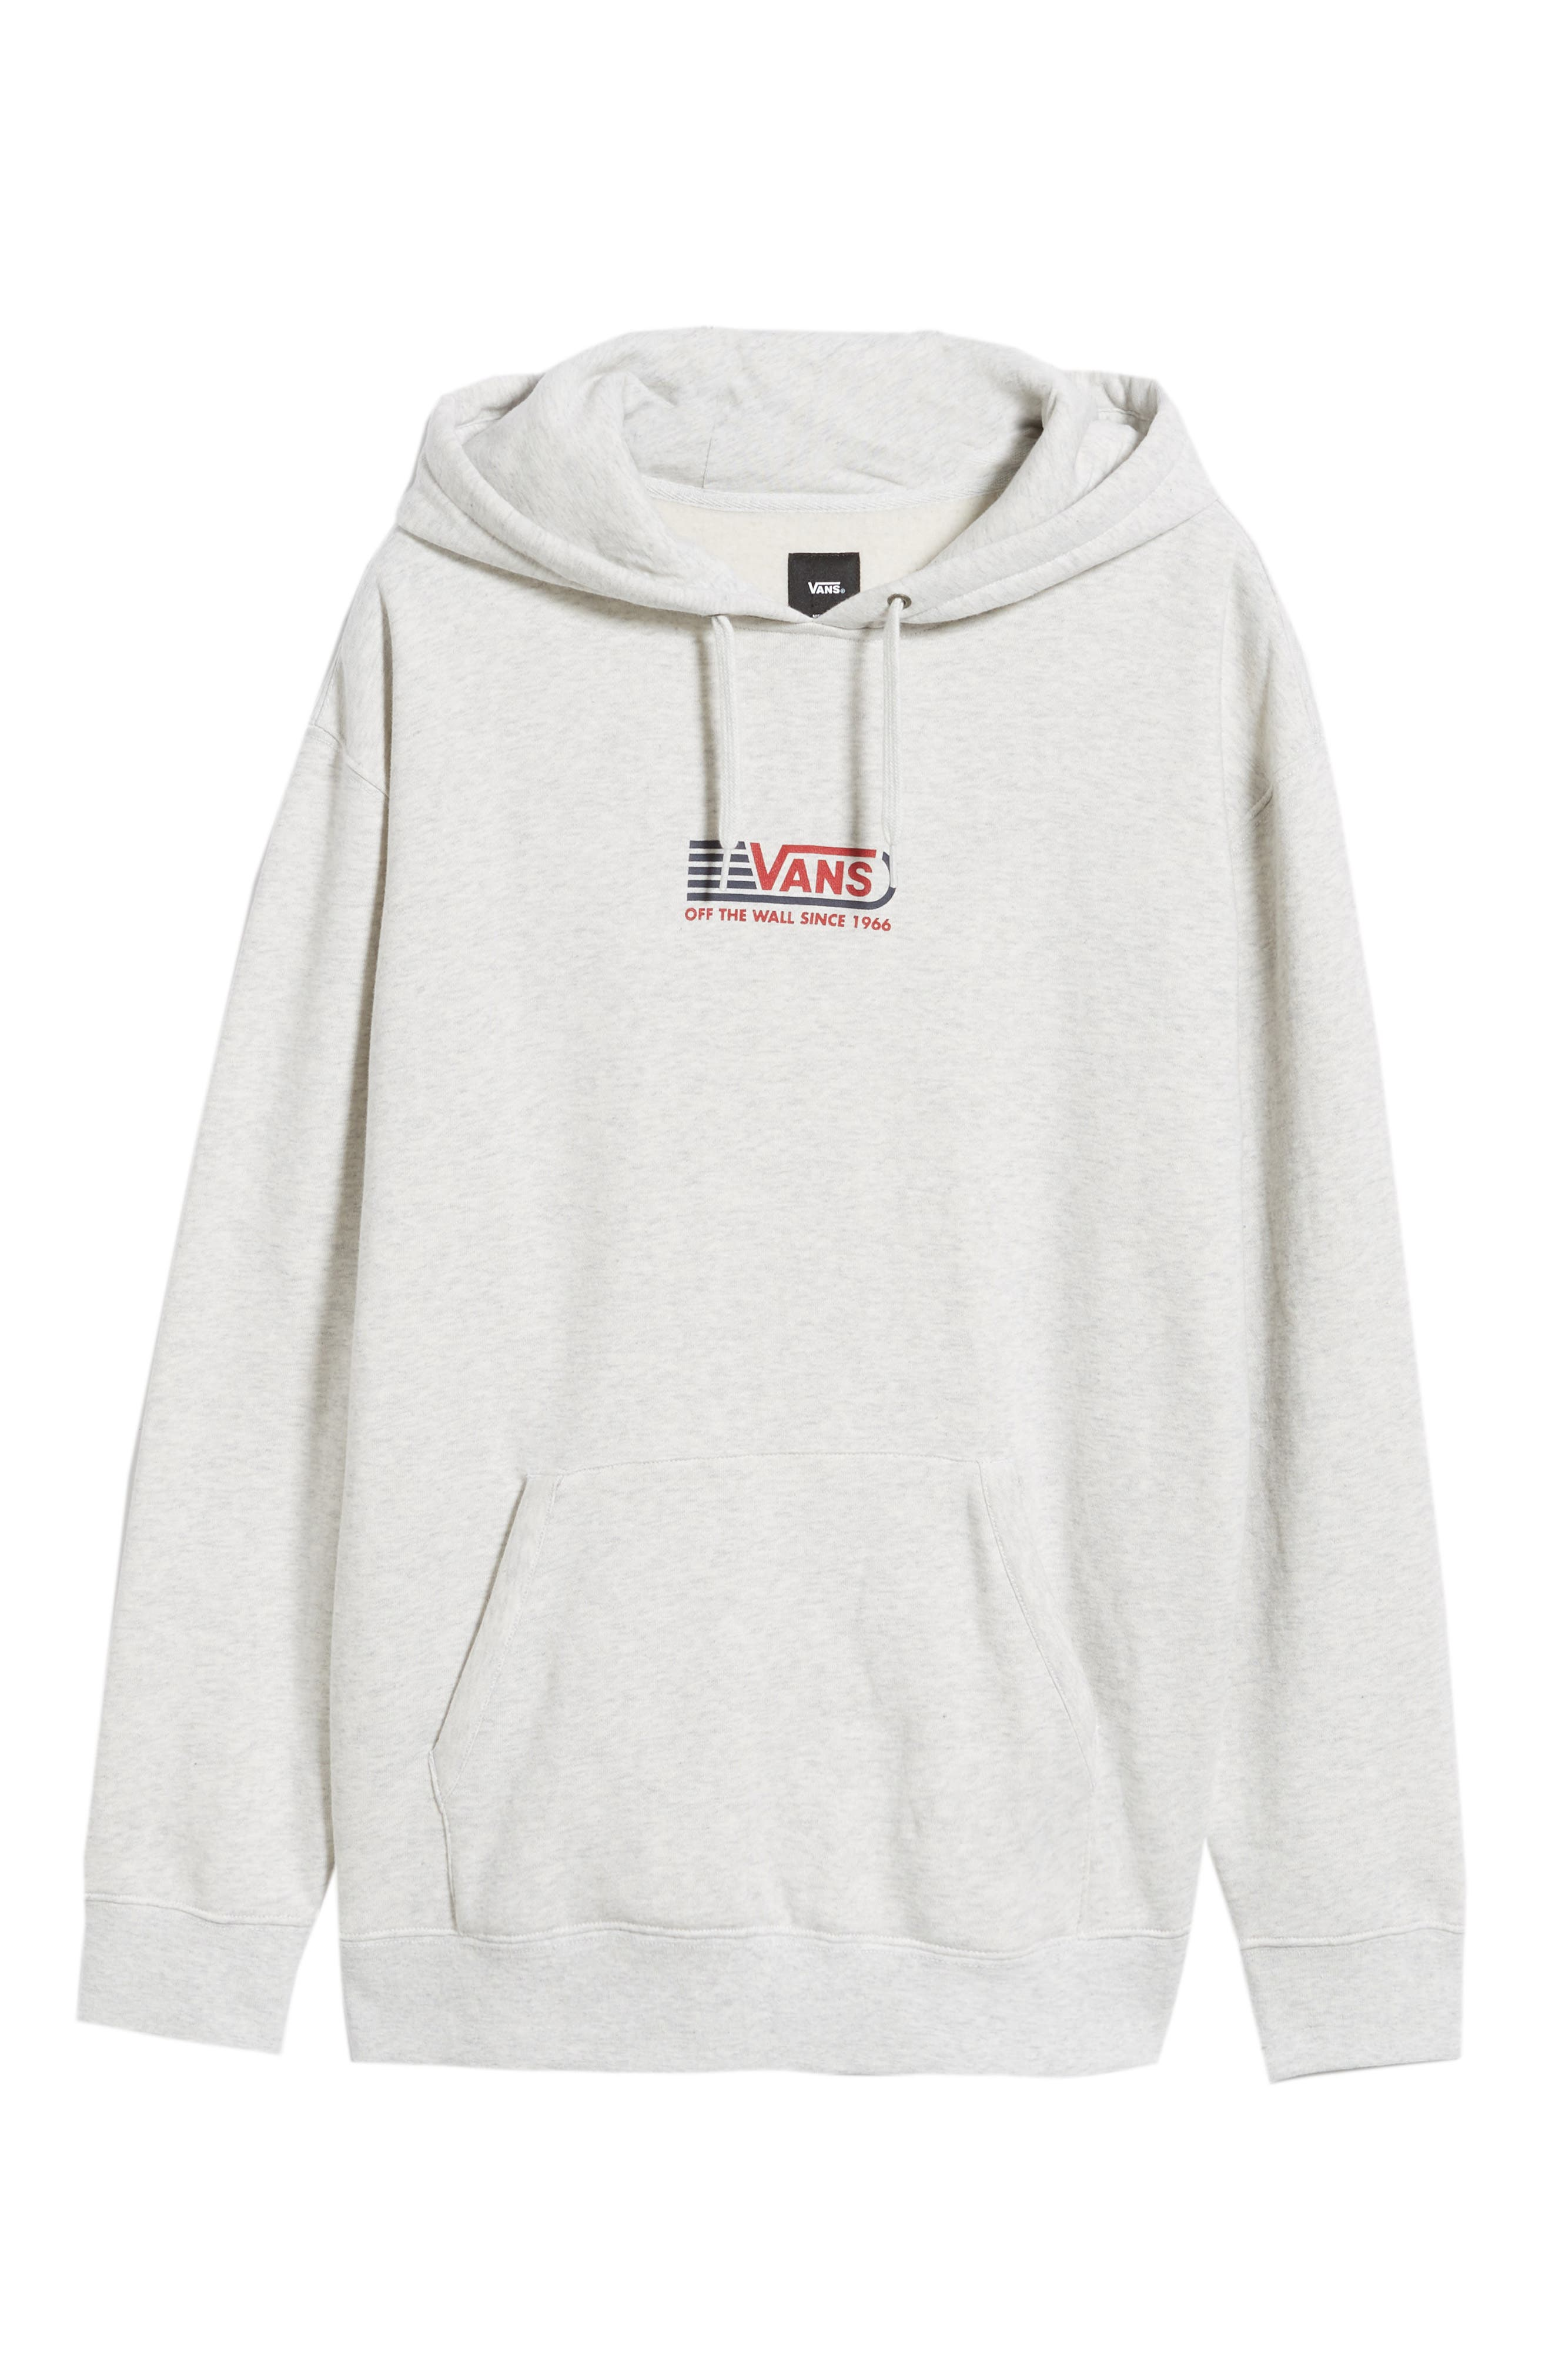 Blendline Oversize Pullover Hoodie,                             Alternate thumbnail 6, color,                             WHITE HEATHER